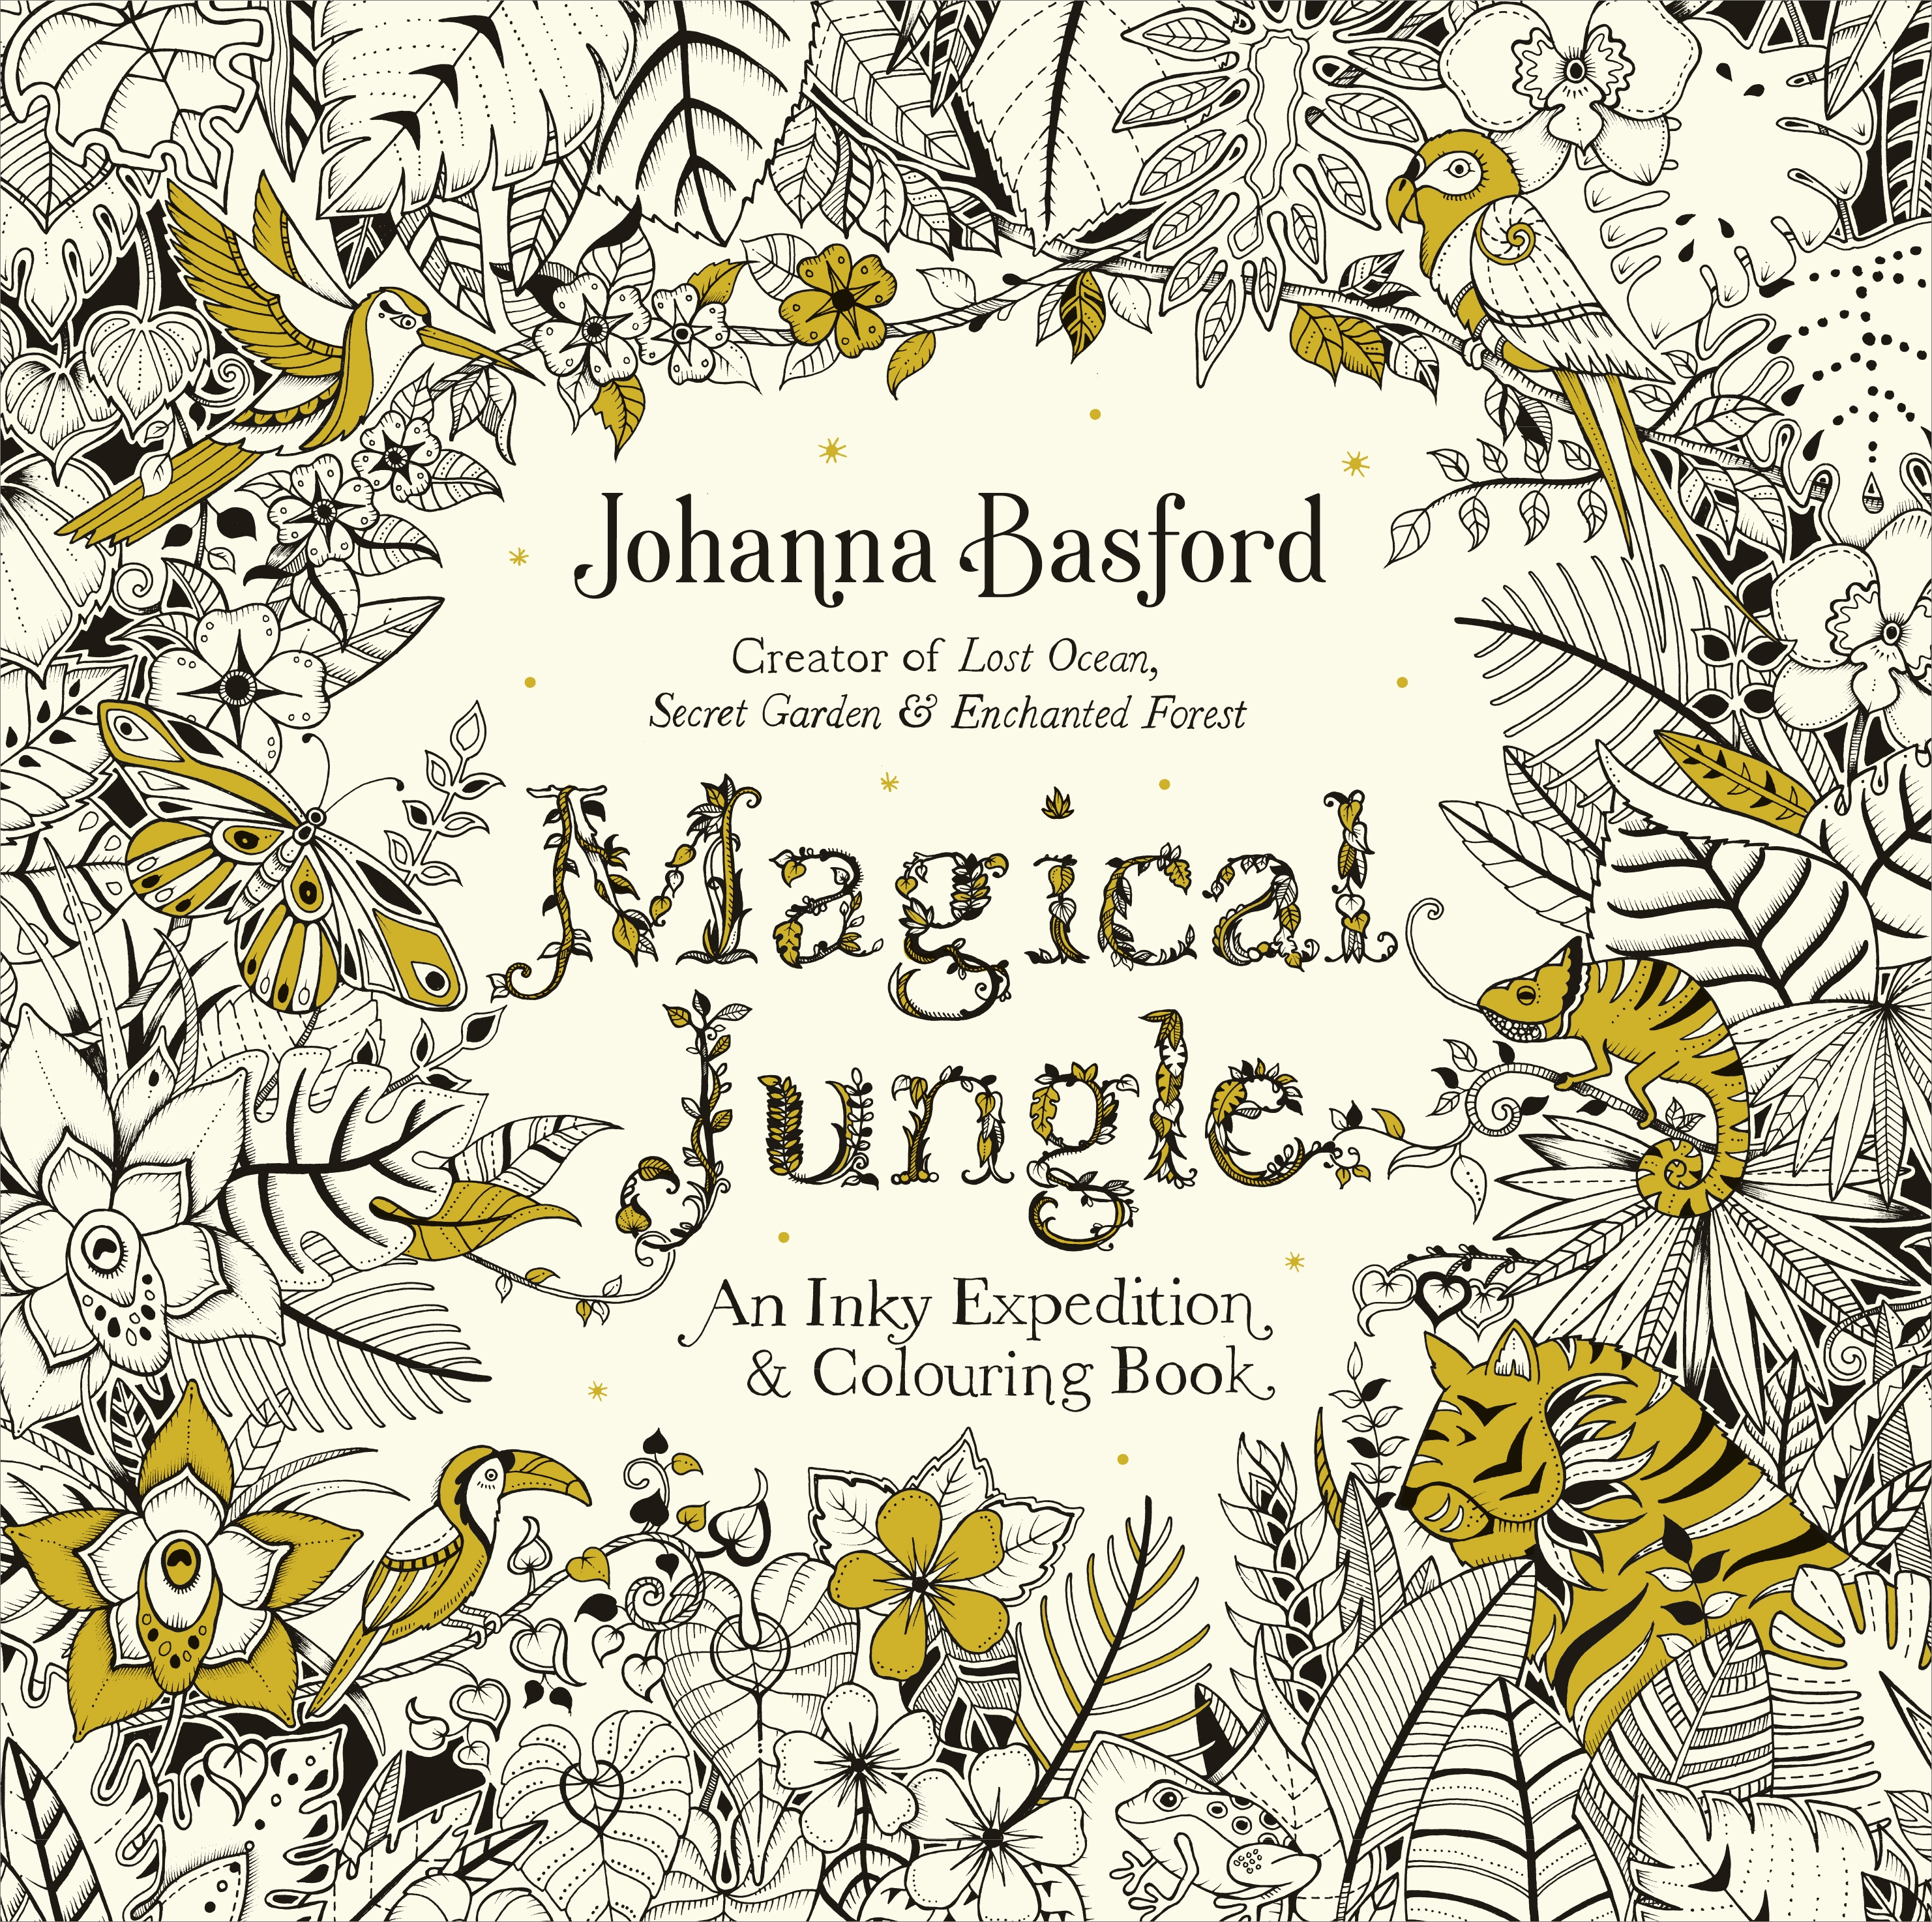 Forbidden Jungle: An Inky Expedition and Colouring Book